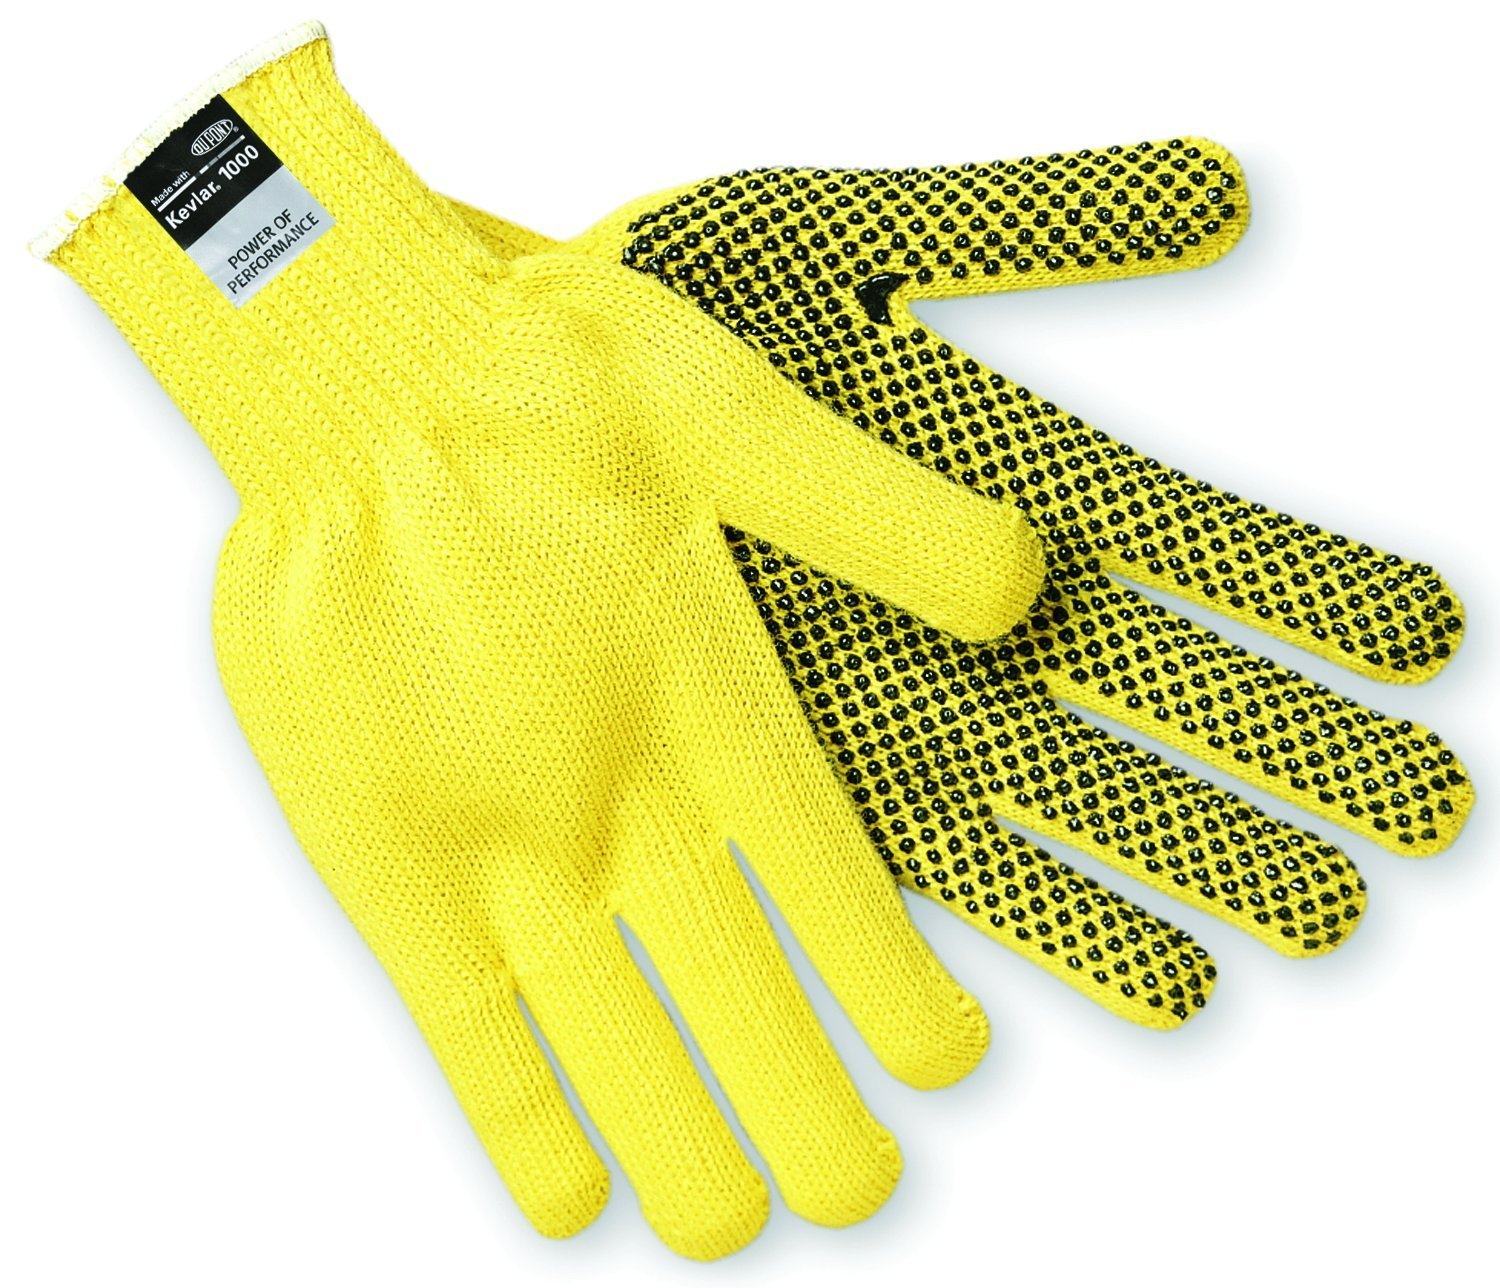 MCR Safety 9365S Kevlar Regular Weight 7 Gauge Dotted Gloves with PVC Dots On 1-Side, Yellow, Small, 1 Pair, 1-Pair